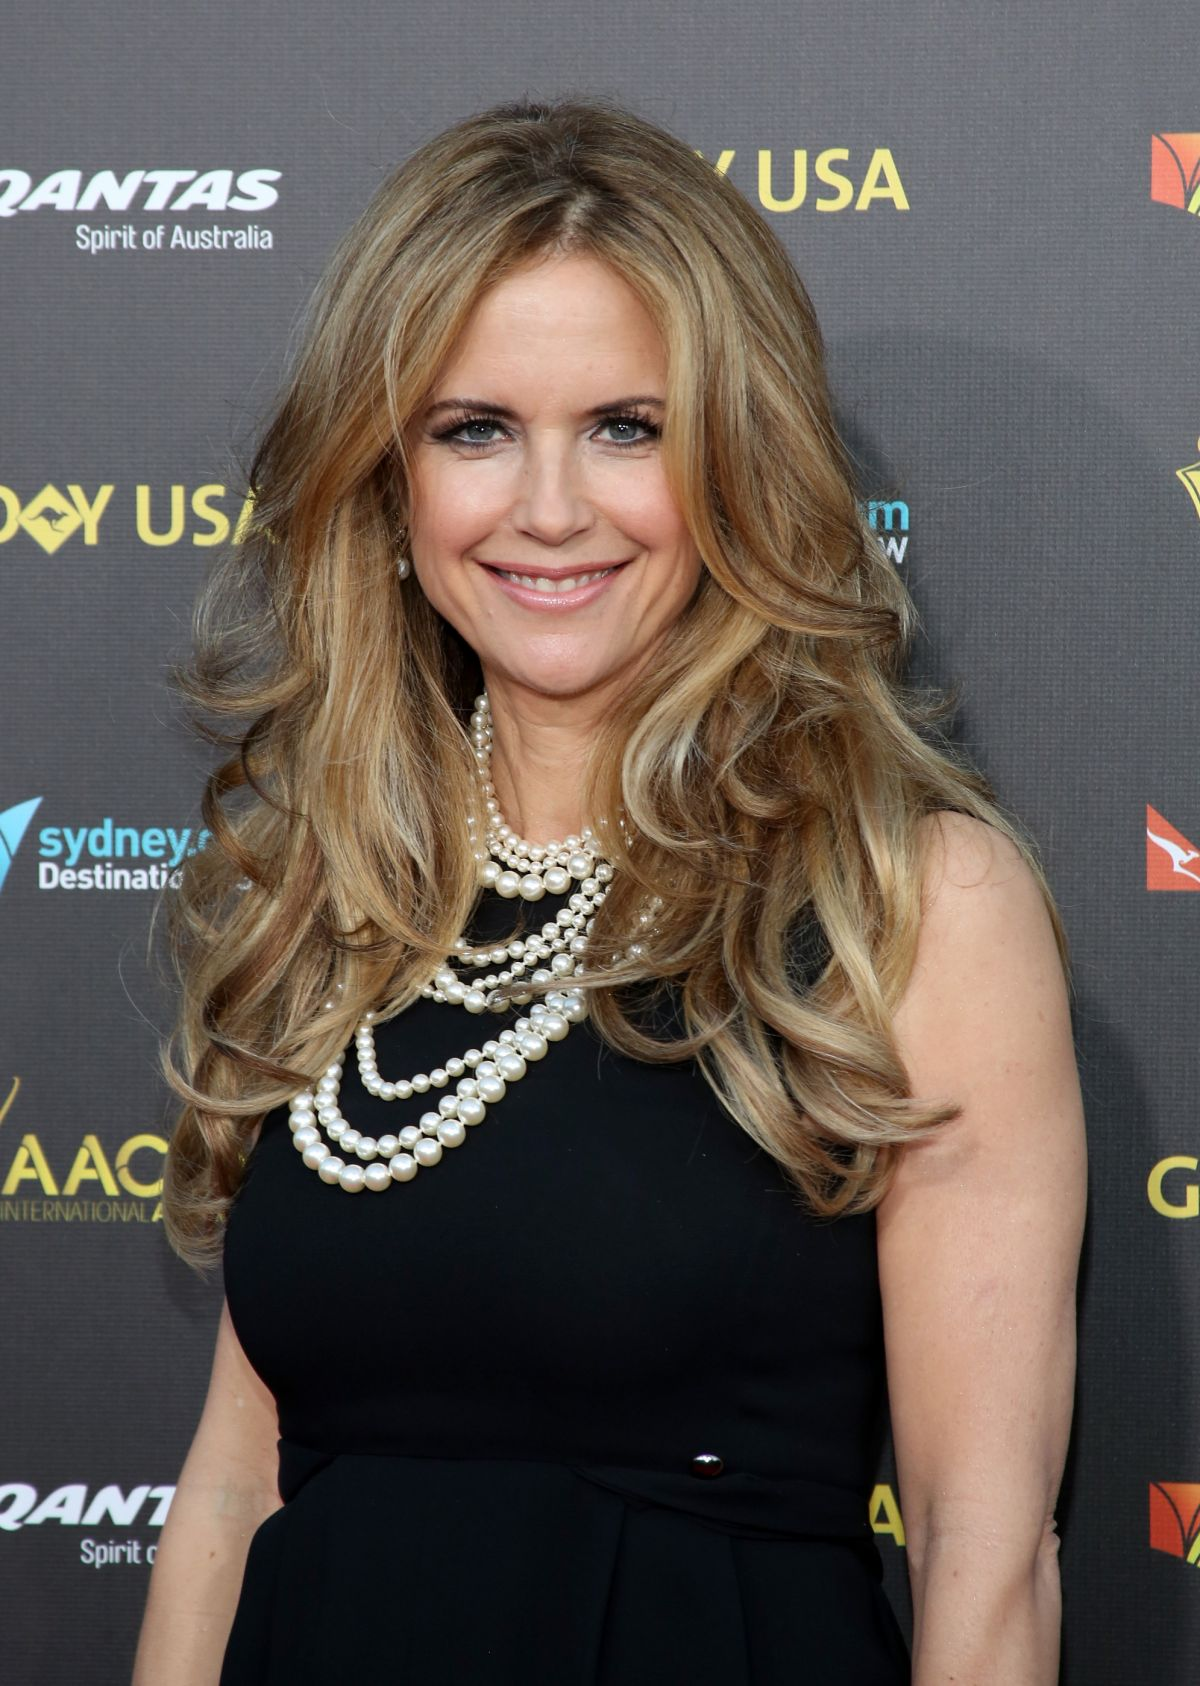 KELLY PRESTON at 2015 G'Day USA Gala in Los Angeles